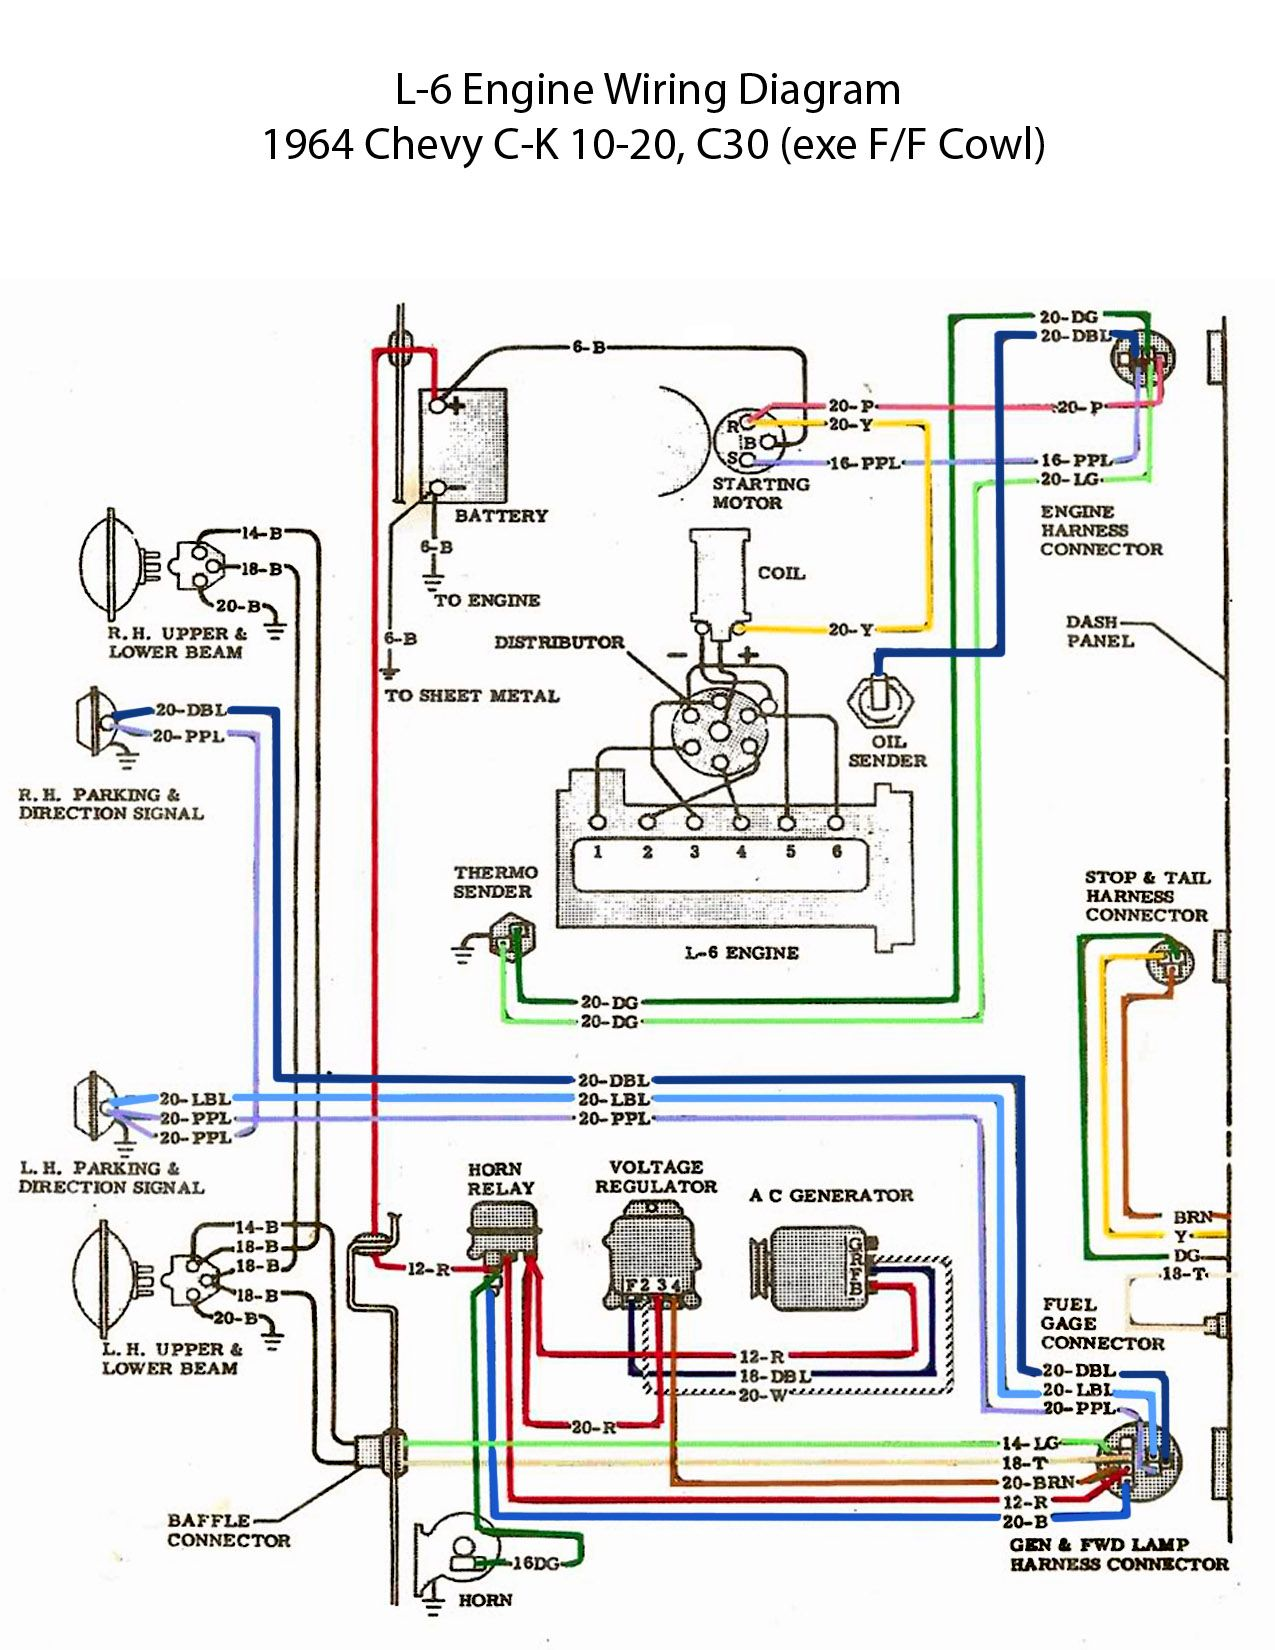 52f445b9f6cba1e2ba90979cb5234ed8 electric l 6 engine wiring diagram '60s chevy c10 wiring  at readyjetset.co